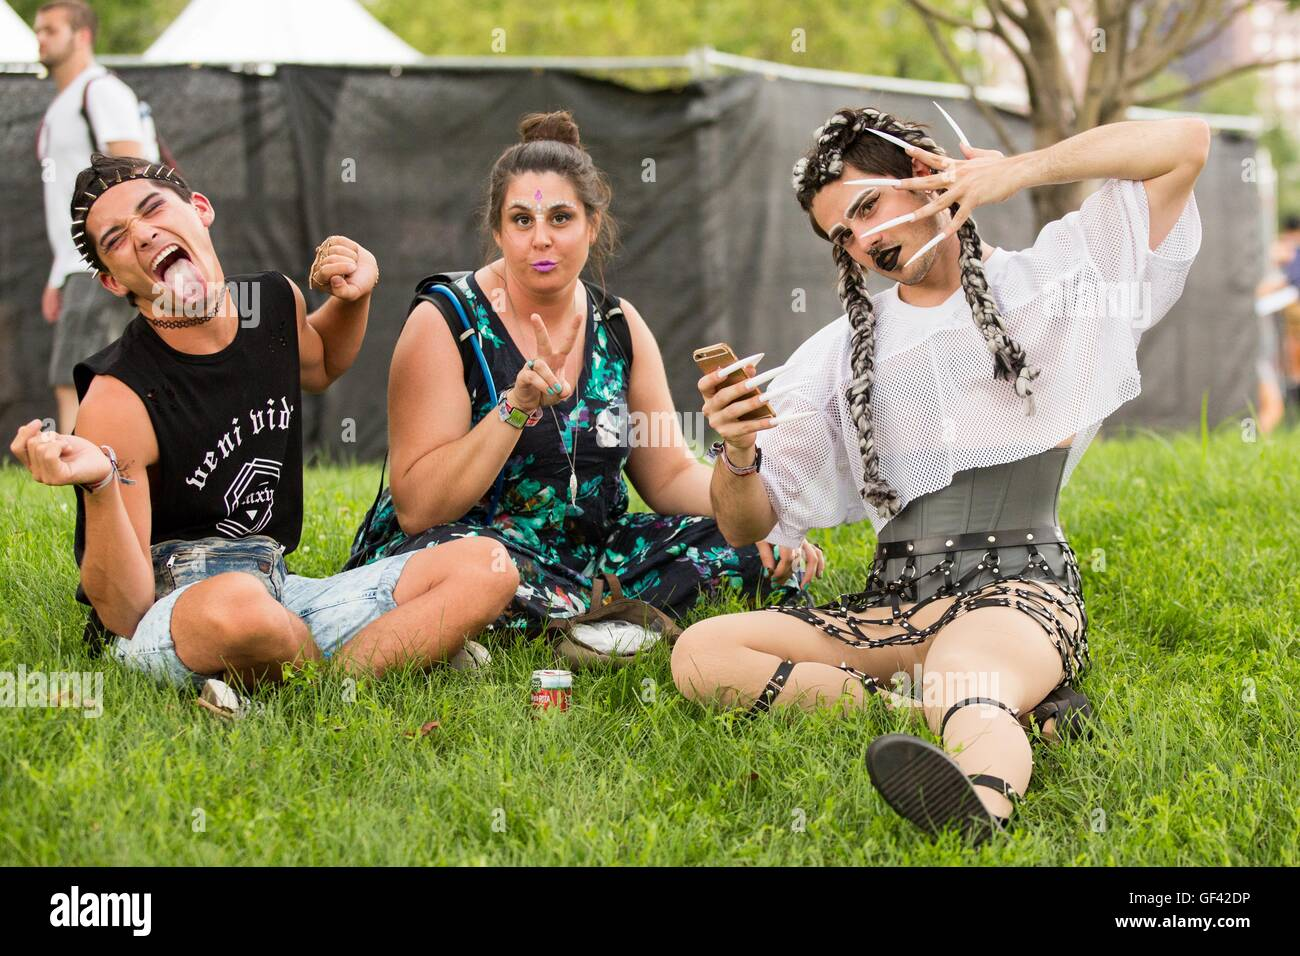 Chicago, Illinois, USA. 28th July, 2016. Music fans relax in the shade during Lollapalooza Music Festival at Grant - Stock Image